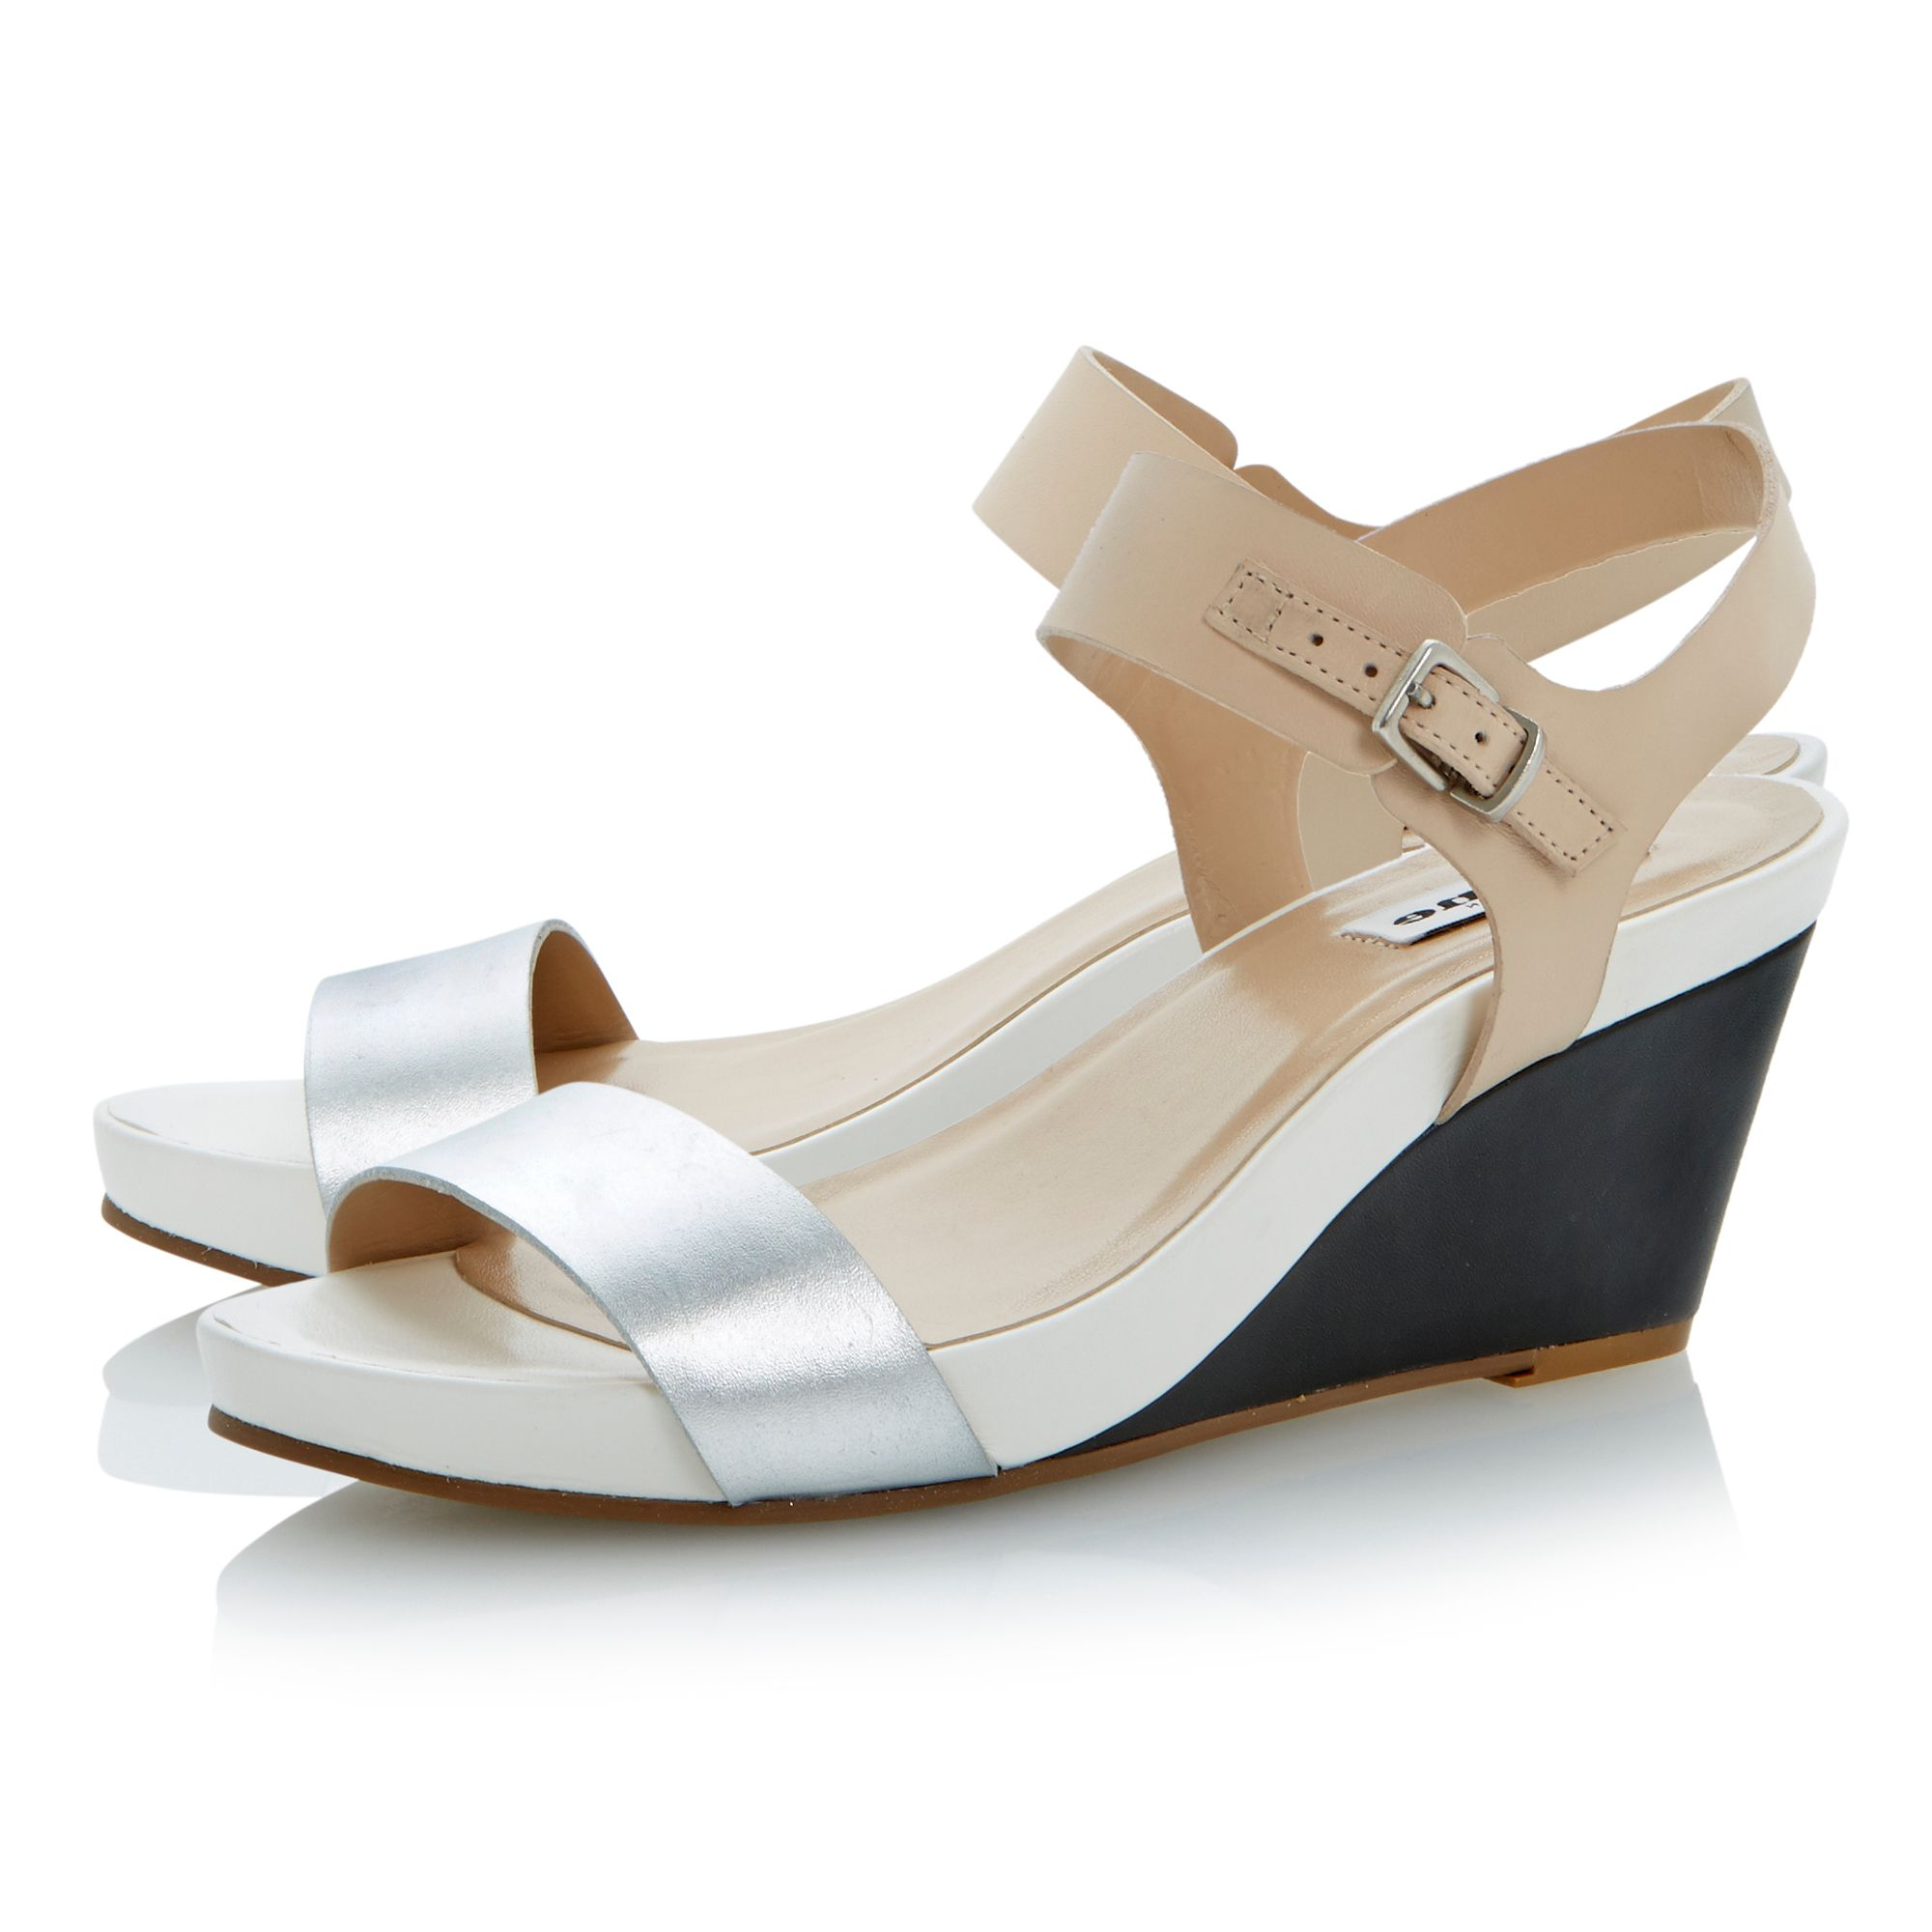 Getup buckle leather wedge sandals